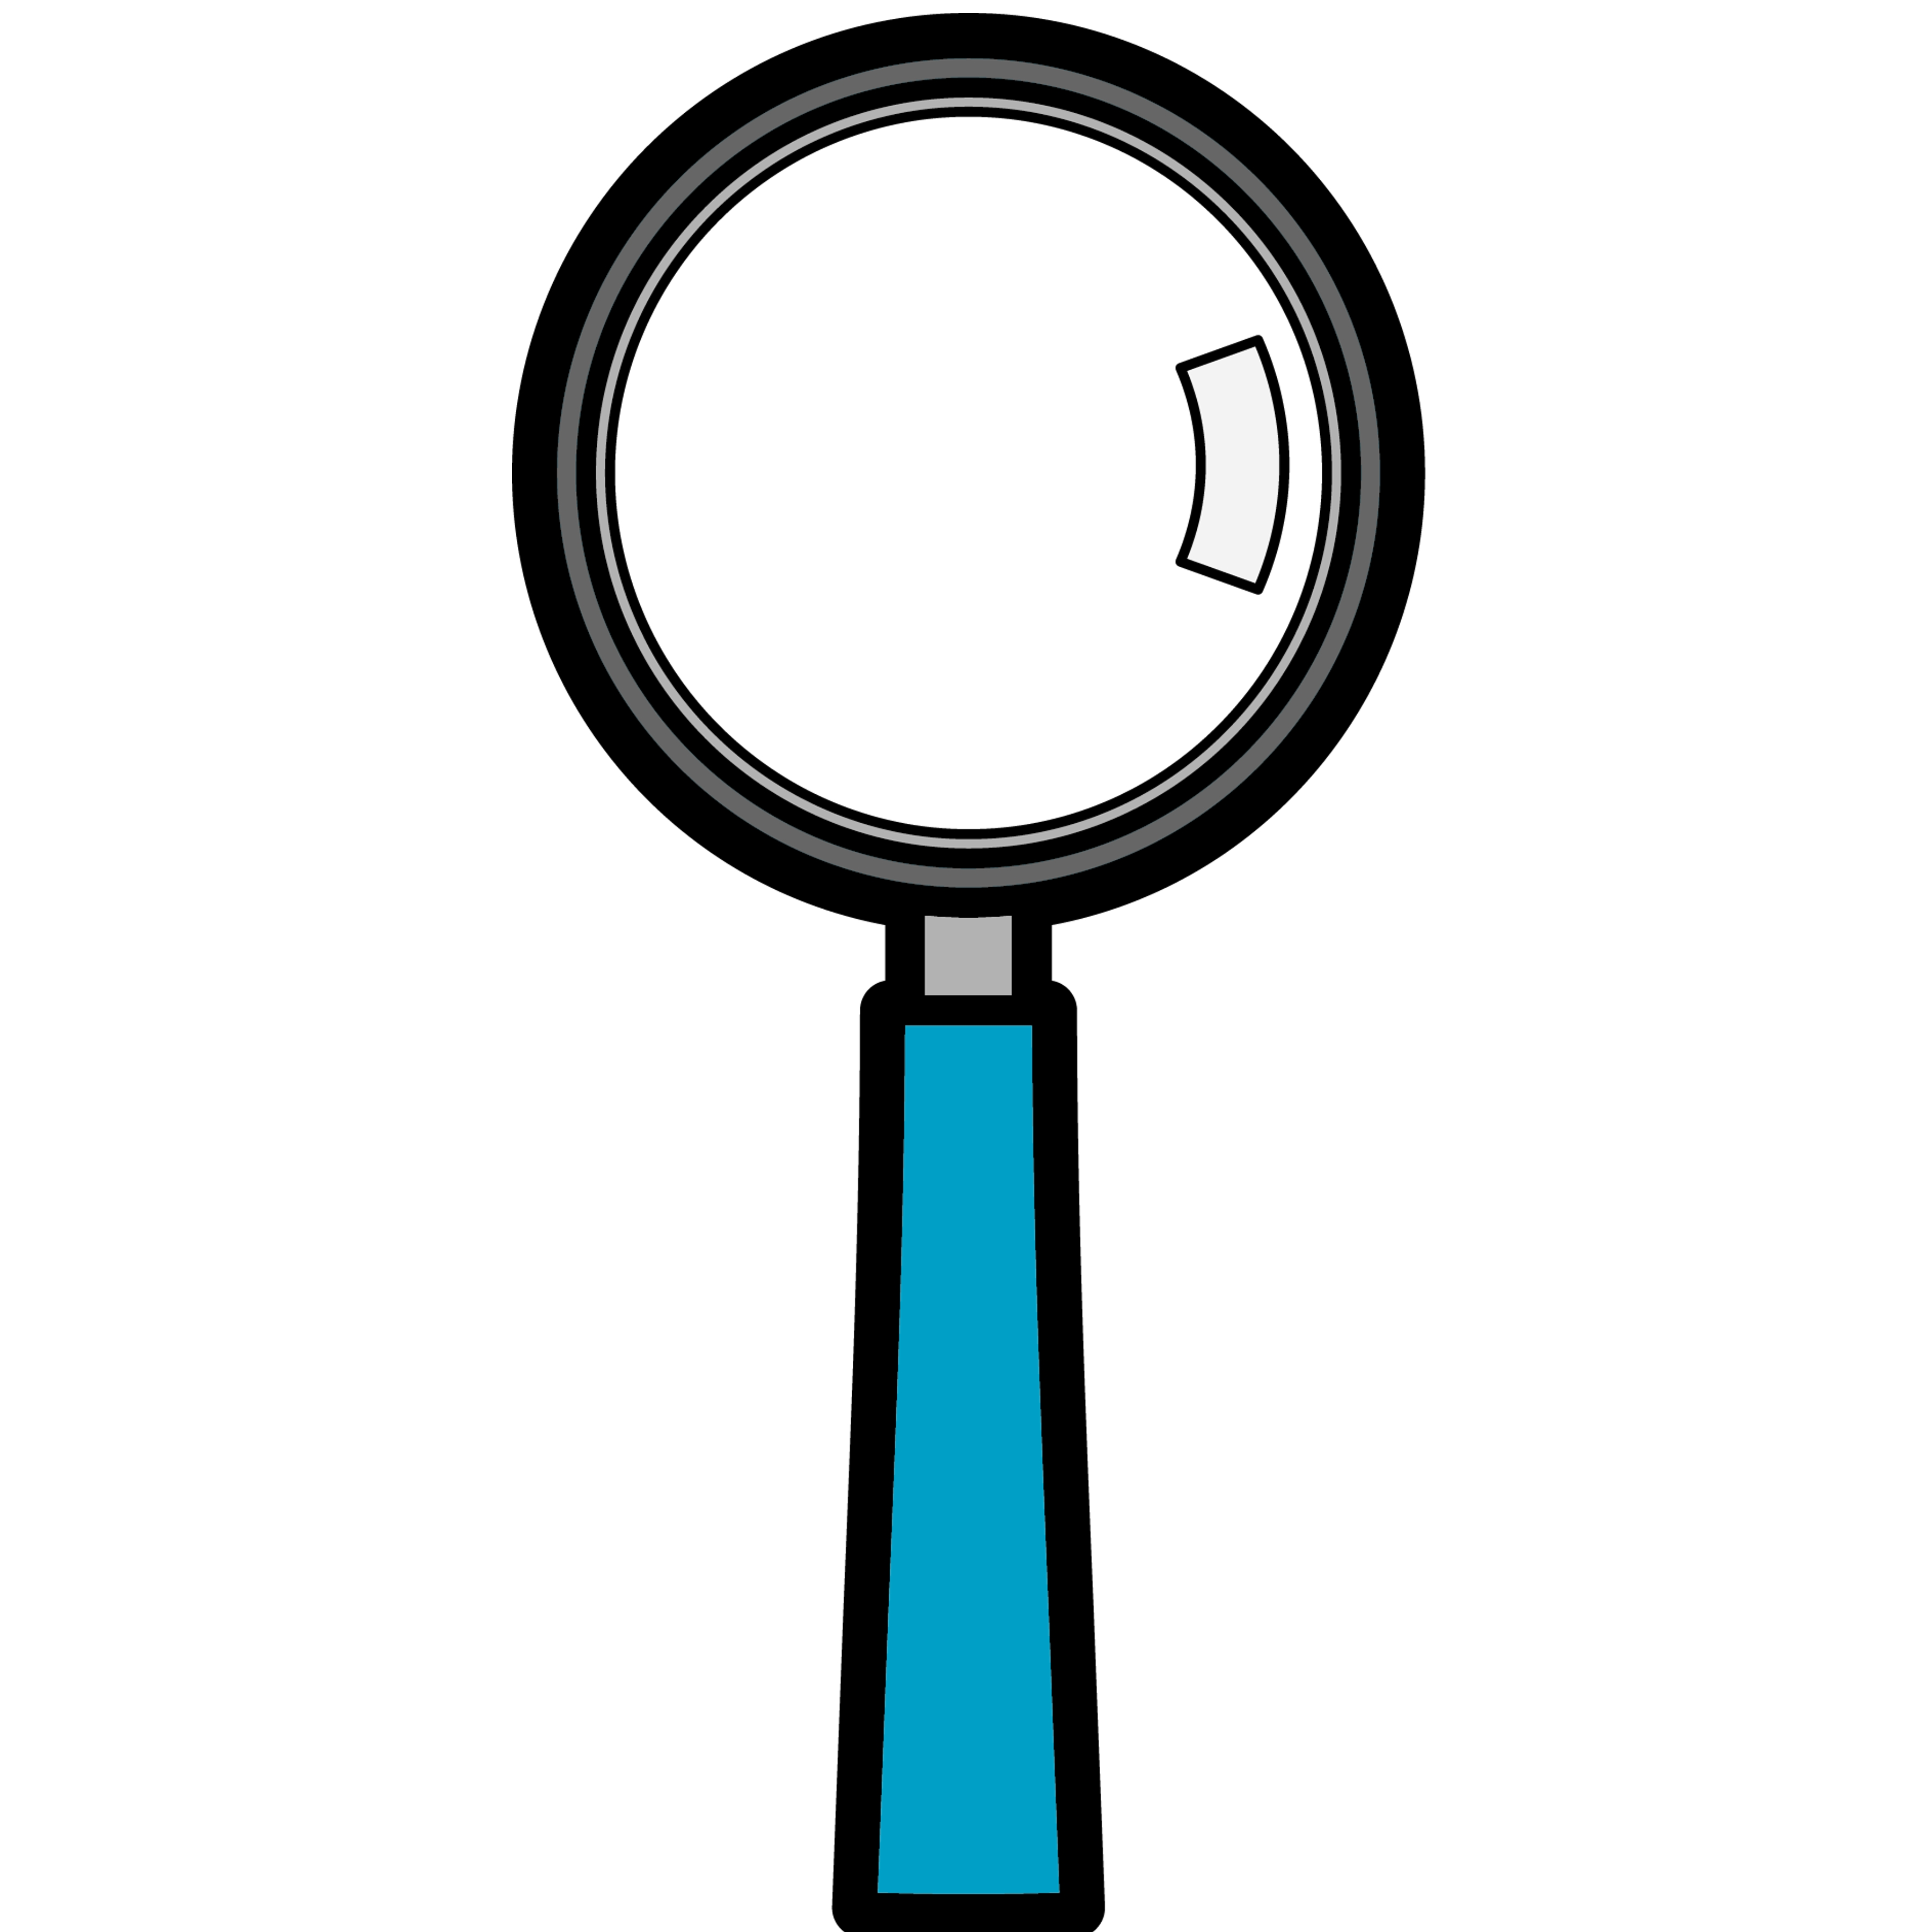 Black and white clipart magnifying reading graphic transparent Free Detective With Magnifying Glass Clipart, Download Free Clip Art ... graphic transparent